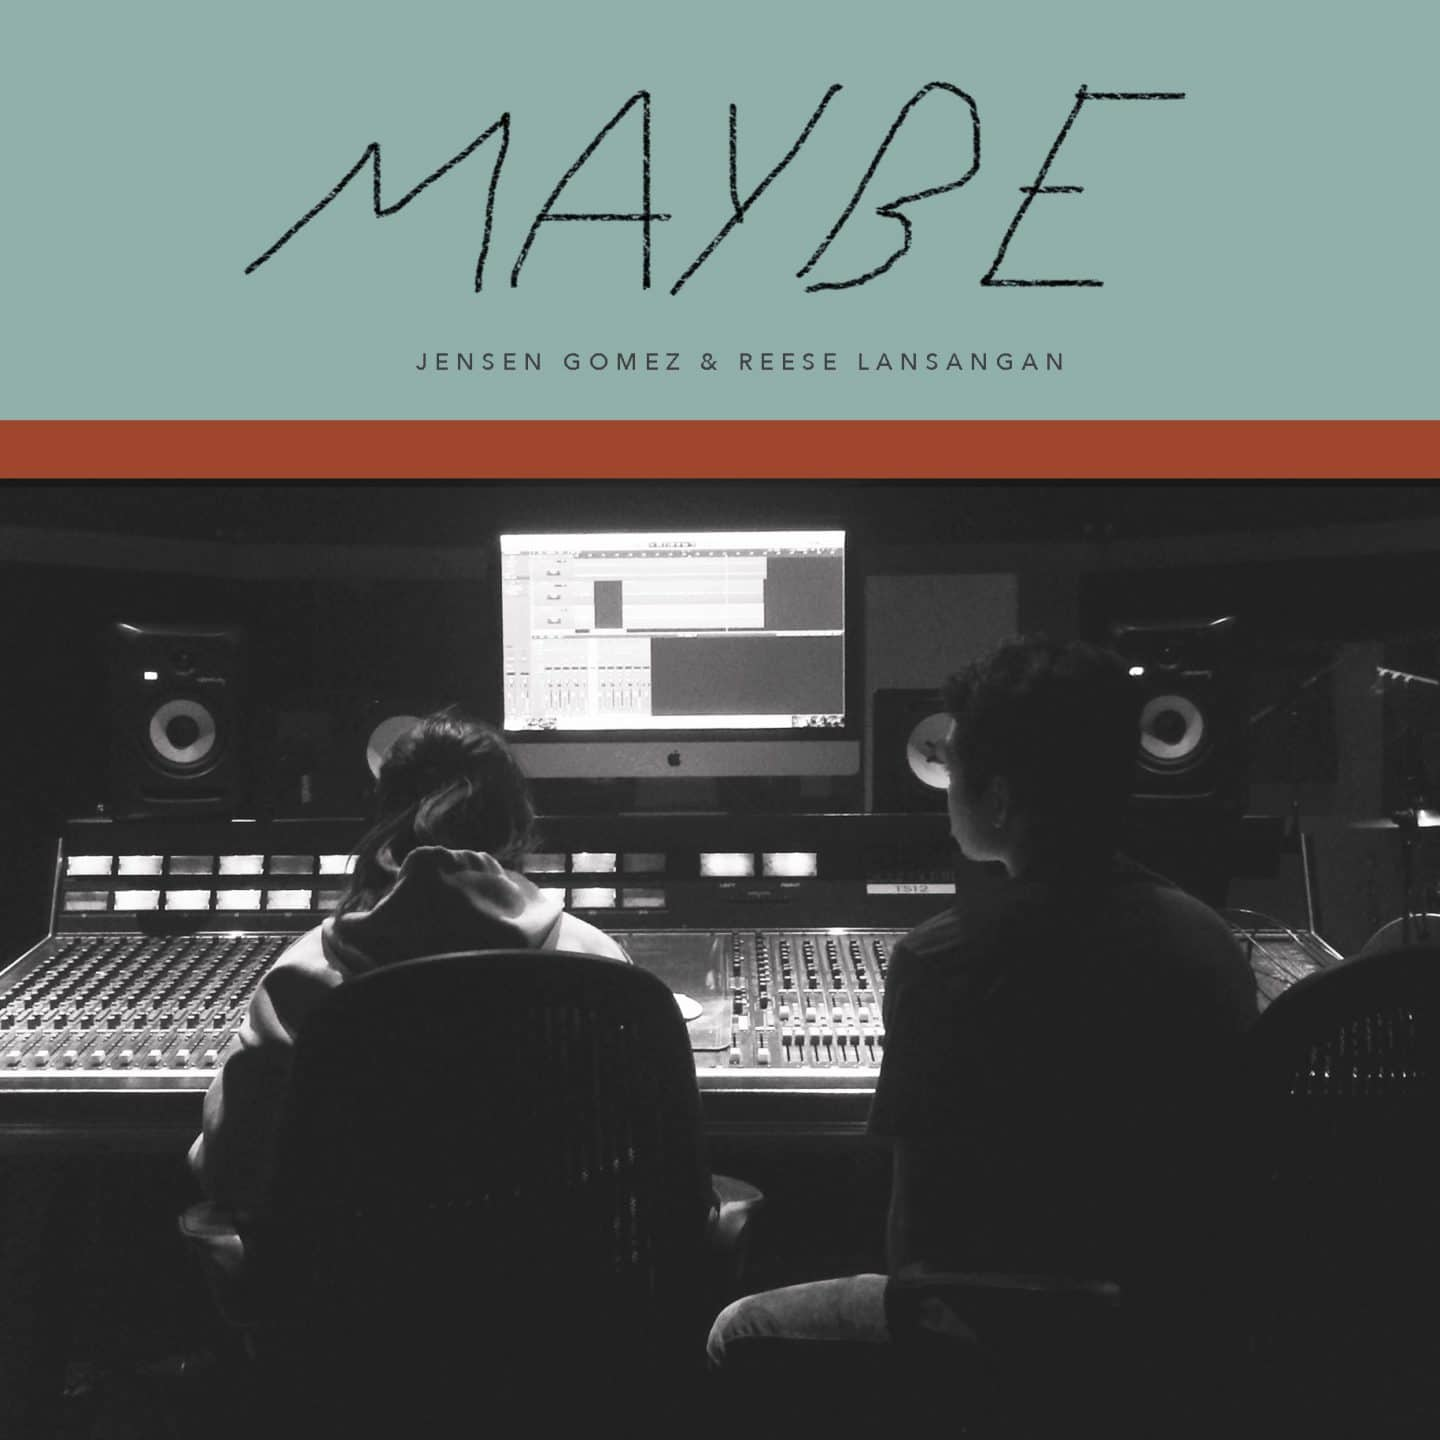 Jensen Gomez and Reese Lansangan collaborate on Maybe